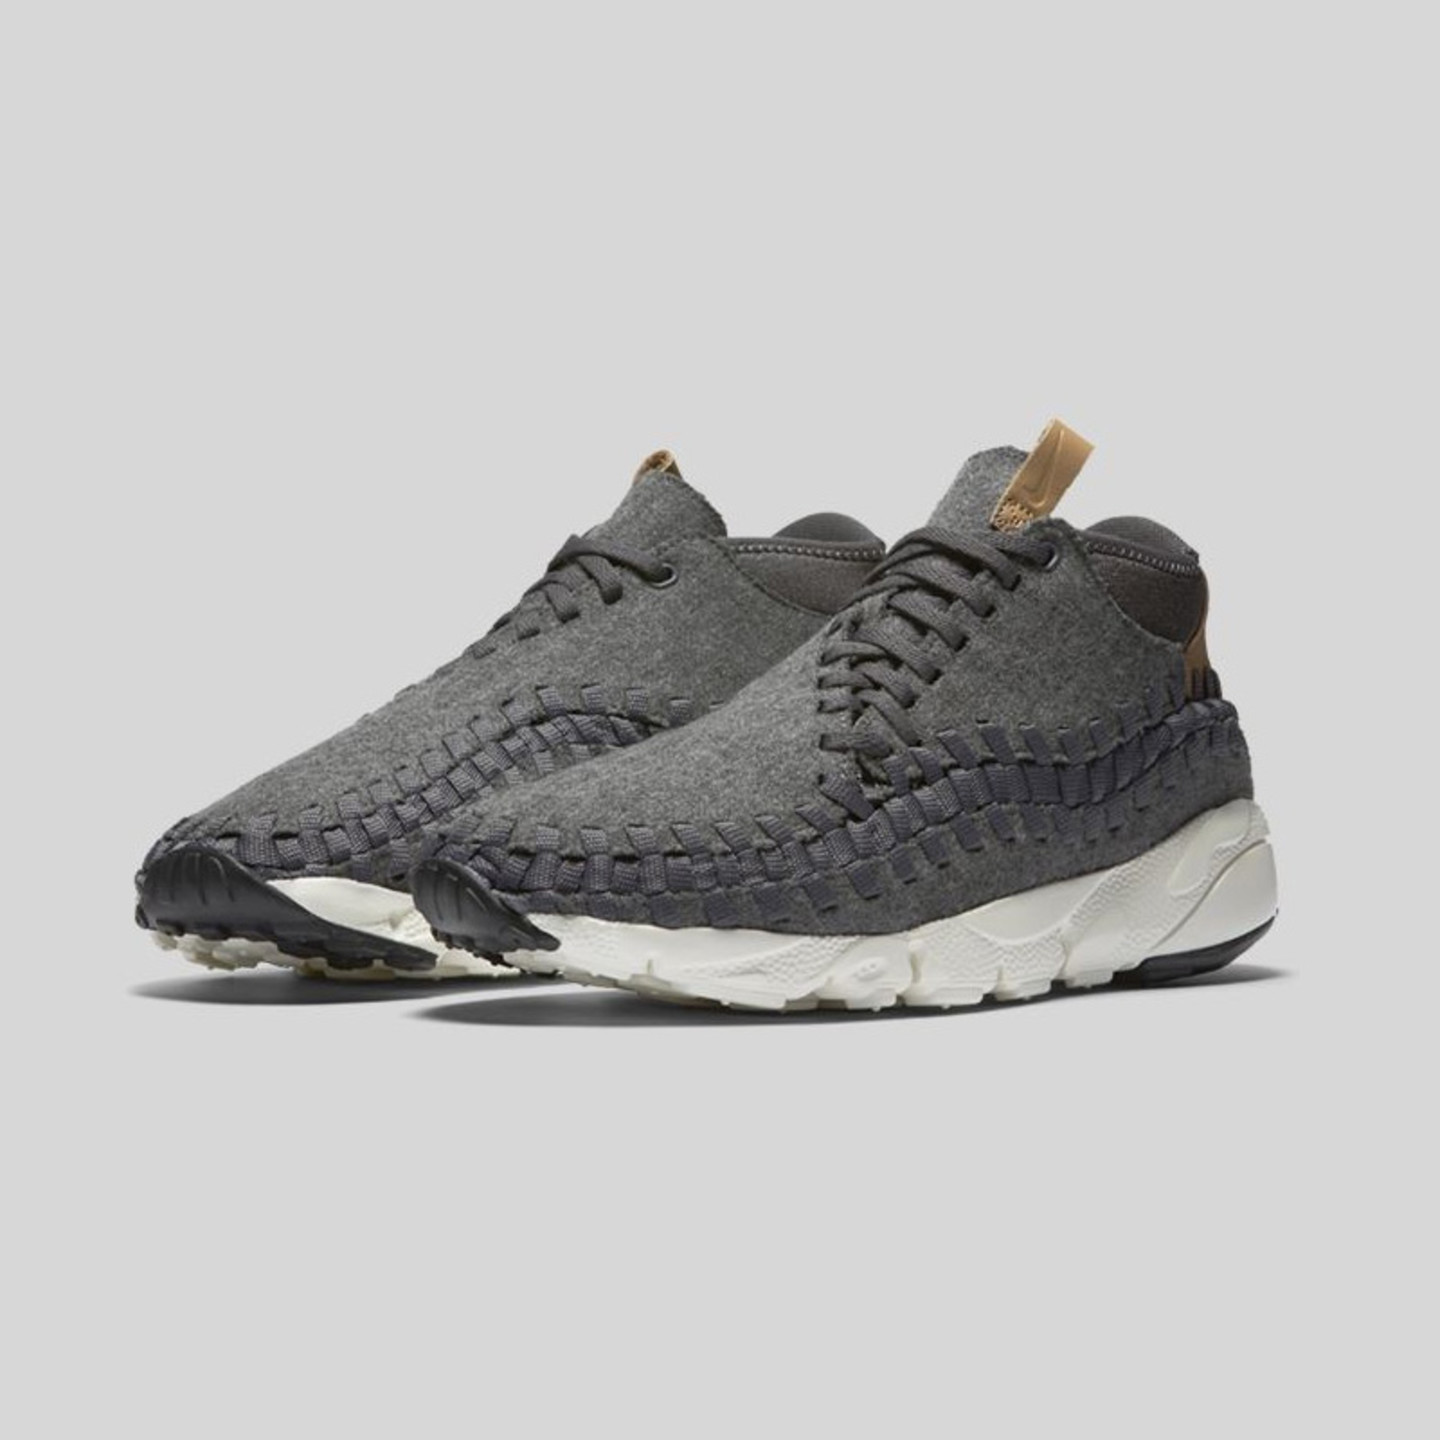 Nike Air Footscape Woven Chukka Dark Grey / Sail / Vachetta Tan 857874-002-44.5